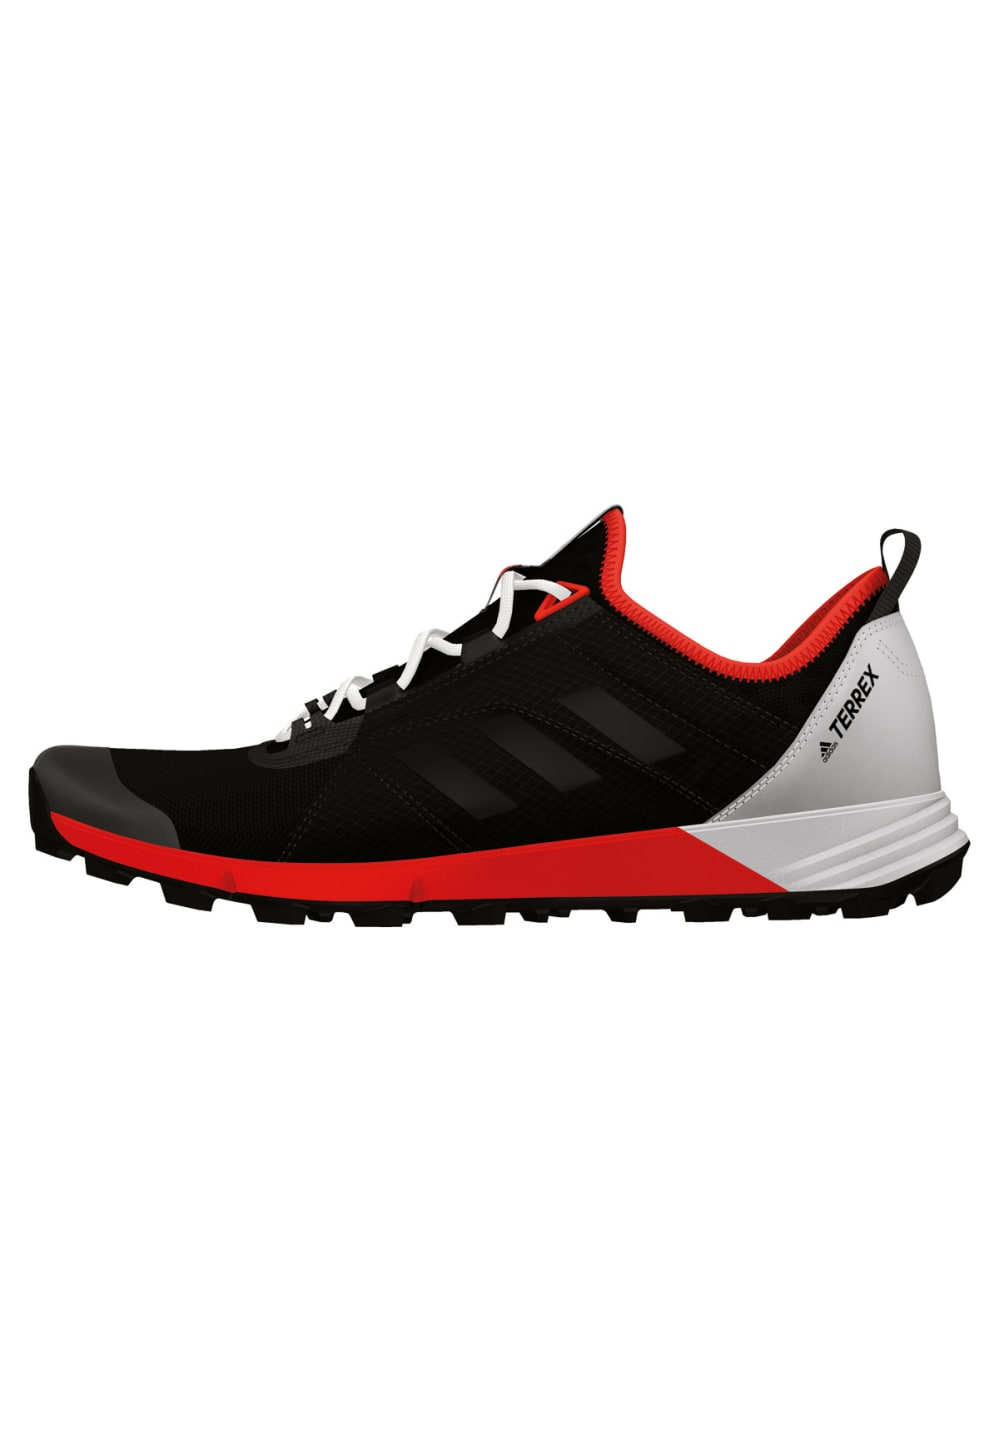 f1b69104a26 adidas Terrex Agravic Speed - Outdoor shoes for Men - Black